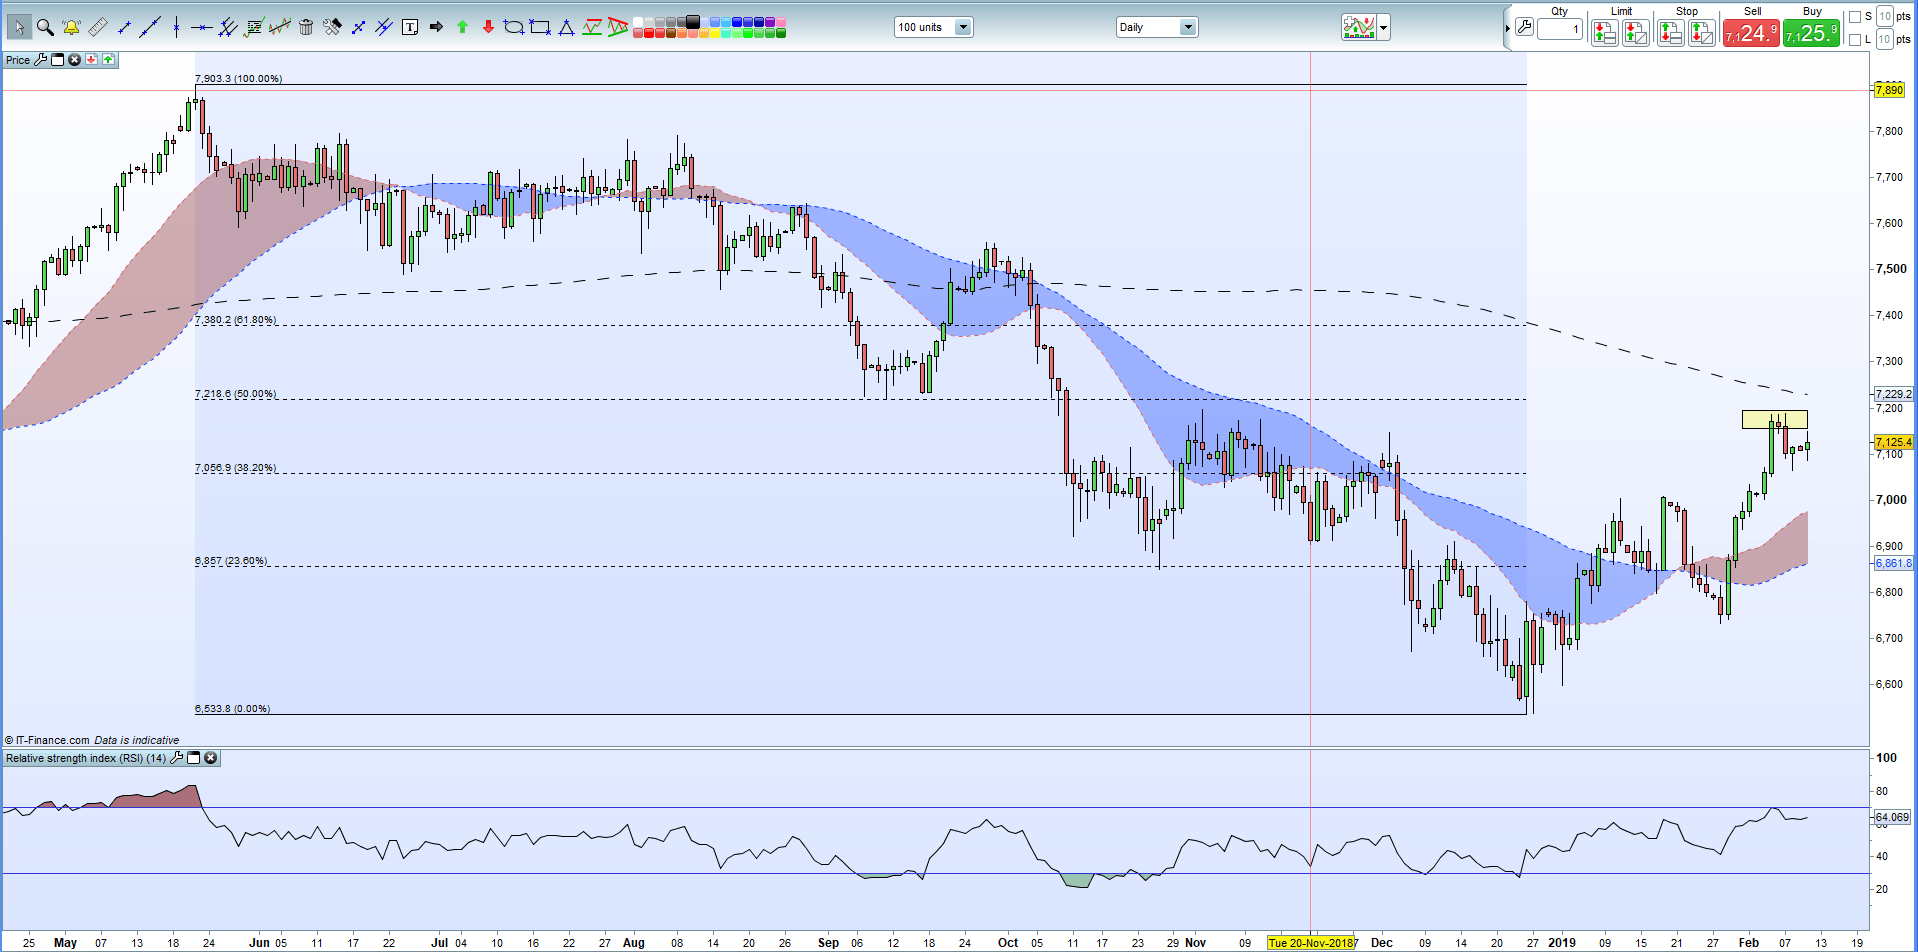 FTSE 100 Daily Price Chart April 2018 February 11 2019